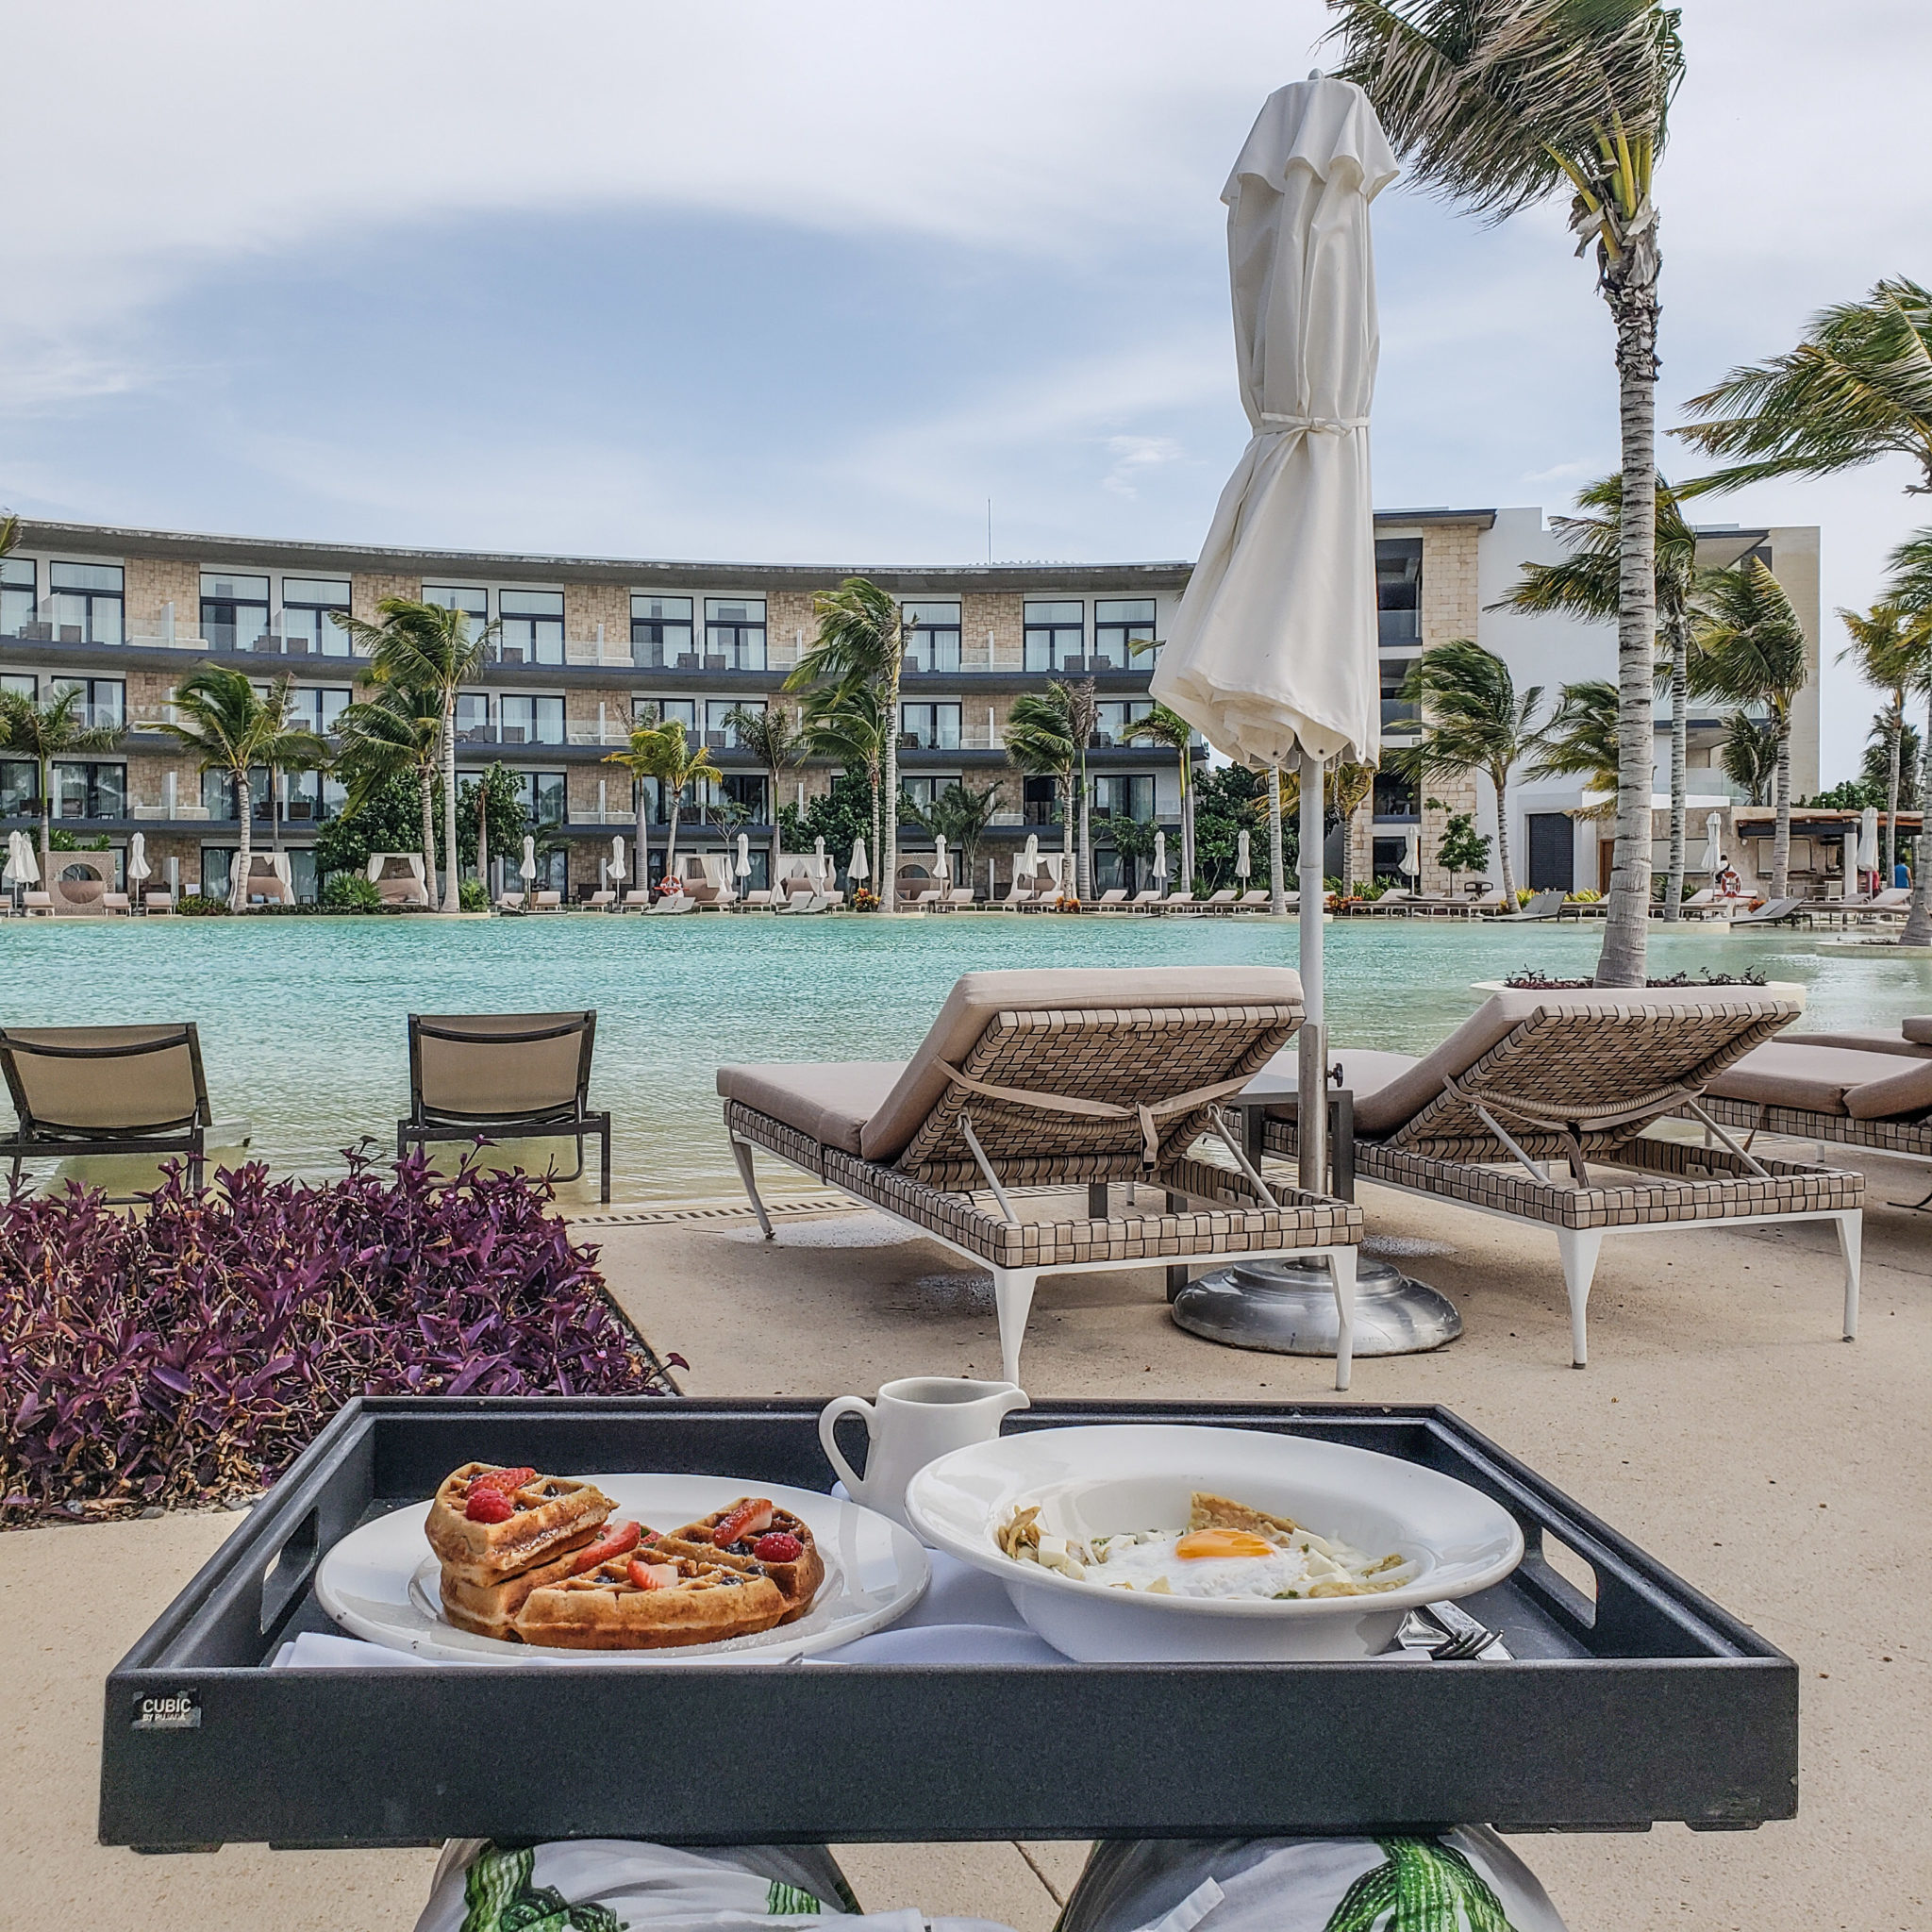 Haven Riviera - Cancun - Haven Resorts - Mexico - Quintana Roo - Breakfast - Poolside